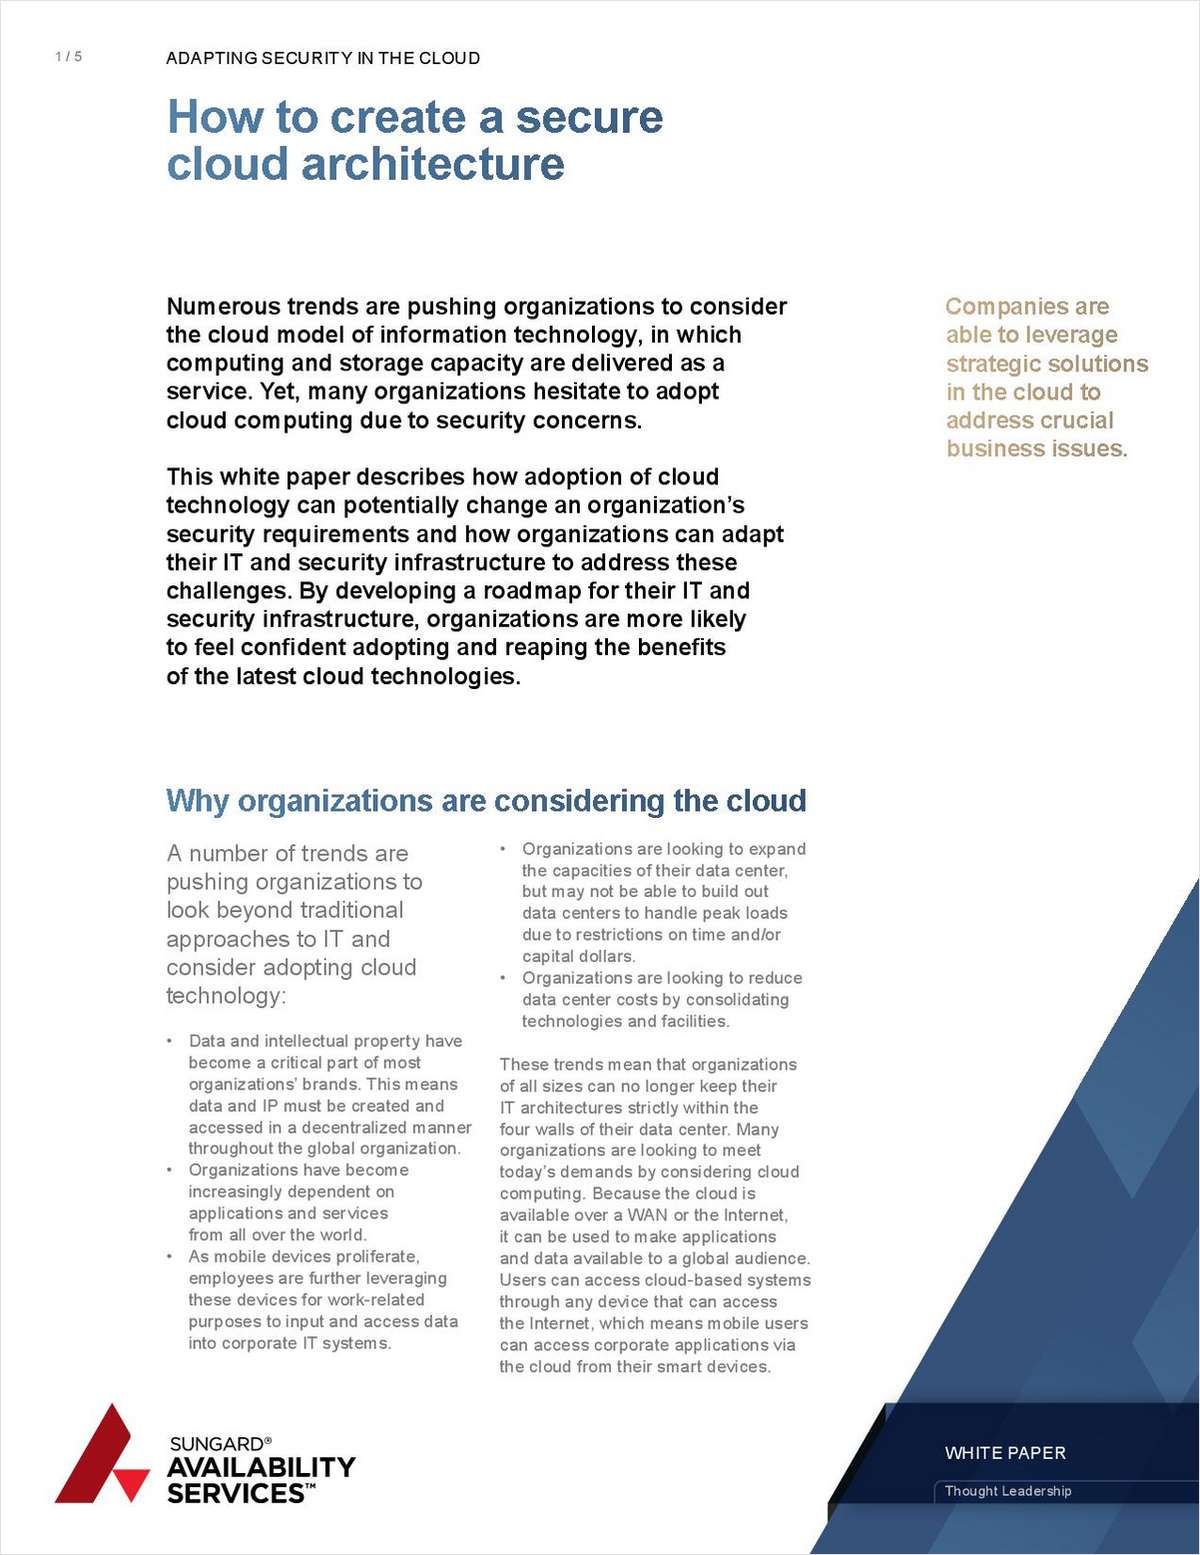 Adapting Security to the Cloud